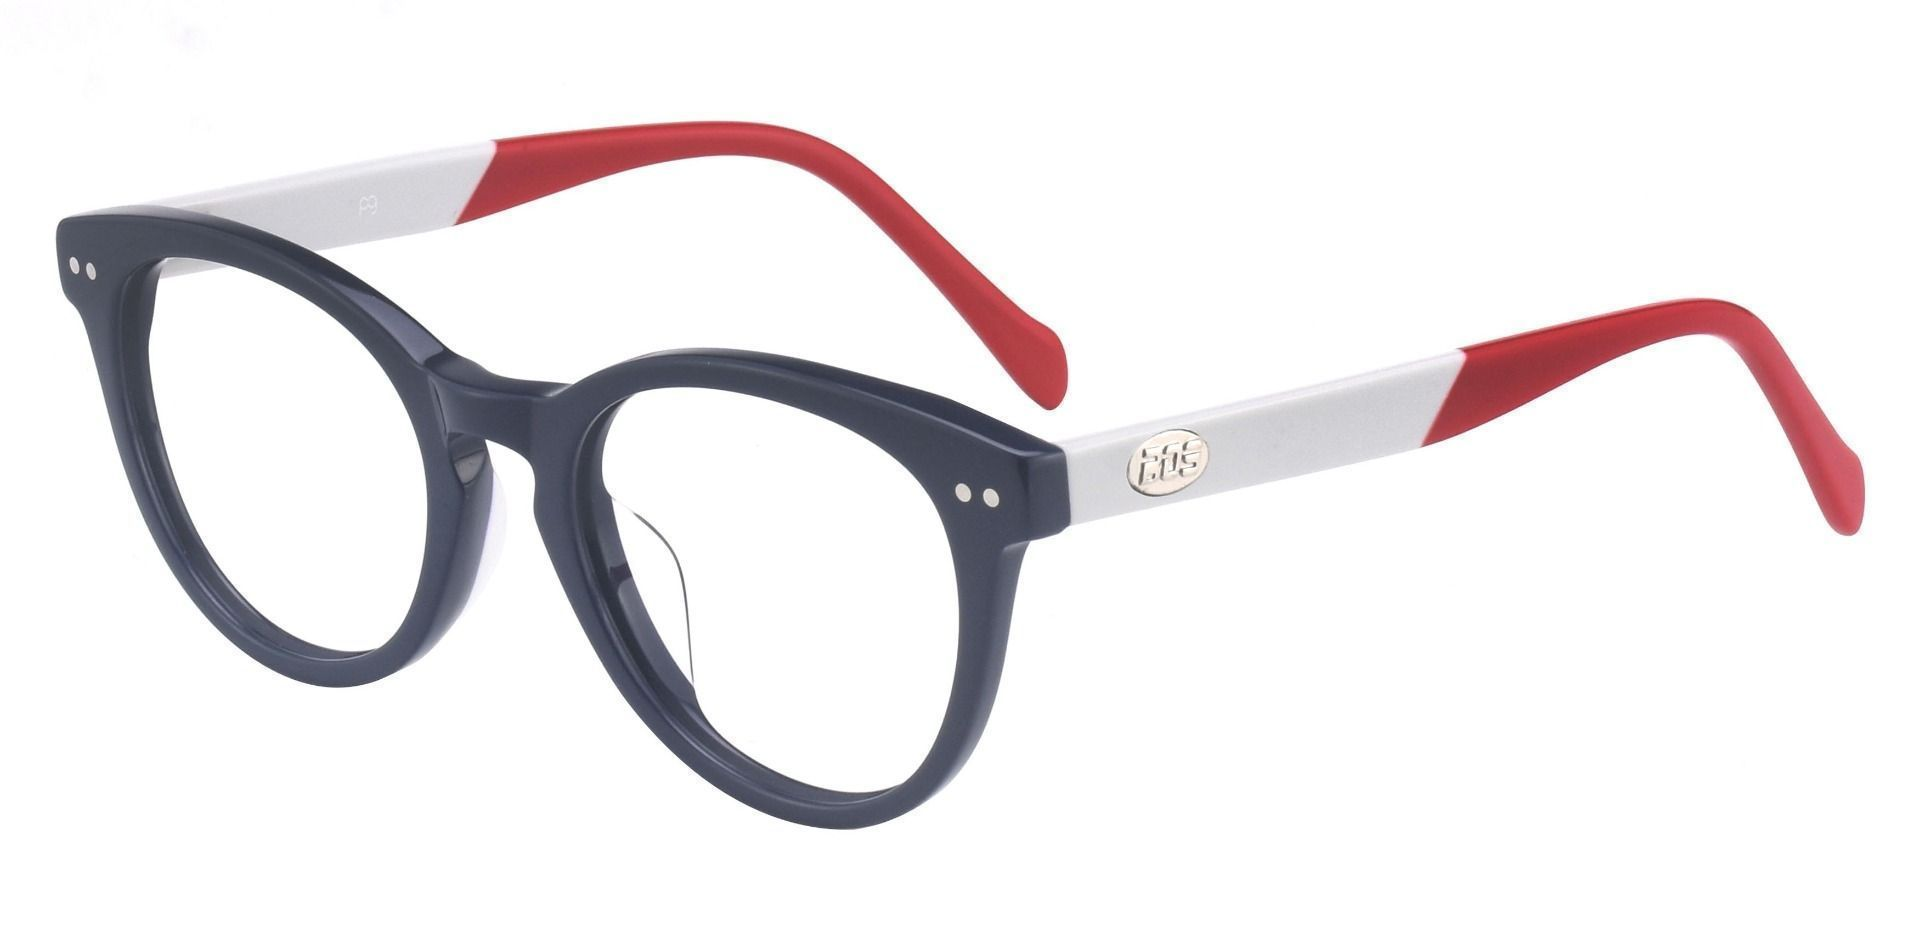 Revere Oval Eyeglasses Frame - The Frame Is Blue And Red